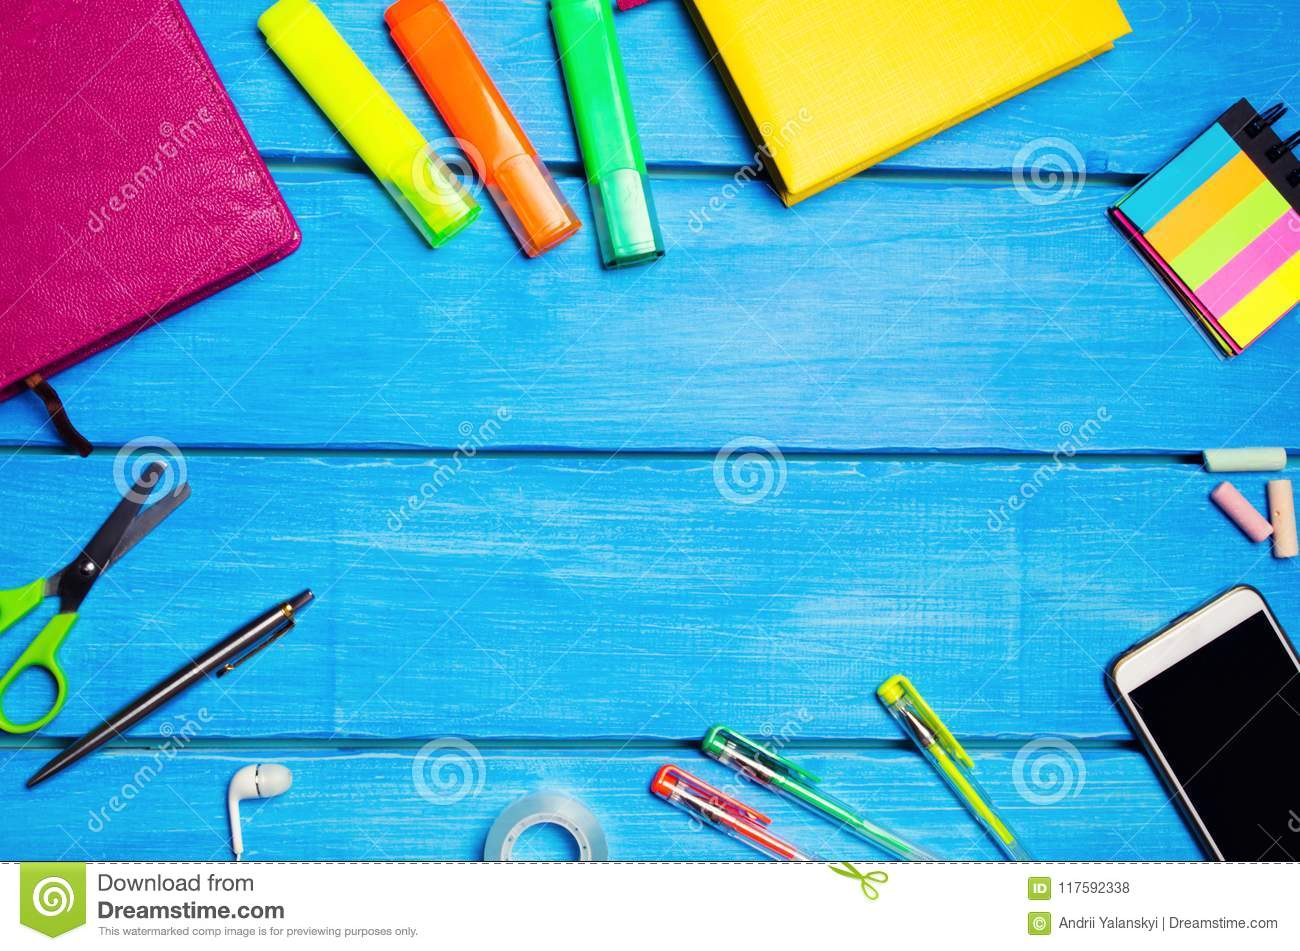 Workplace of the pupil of the school on a blue wooden table. Creative disorder, scattered pens and pencils. Place for text, nobody